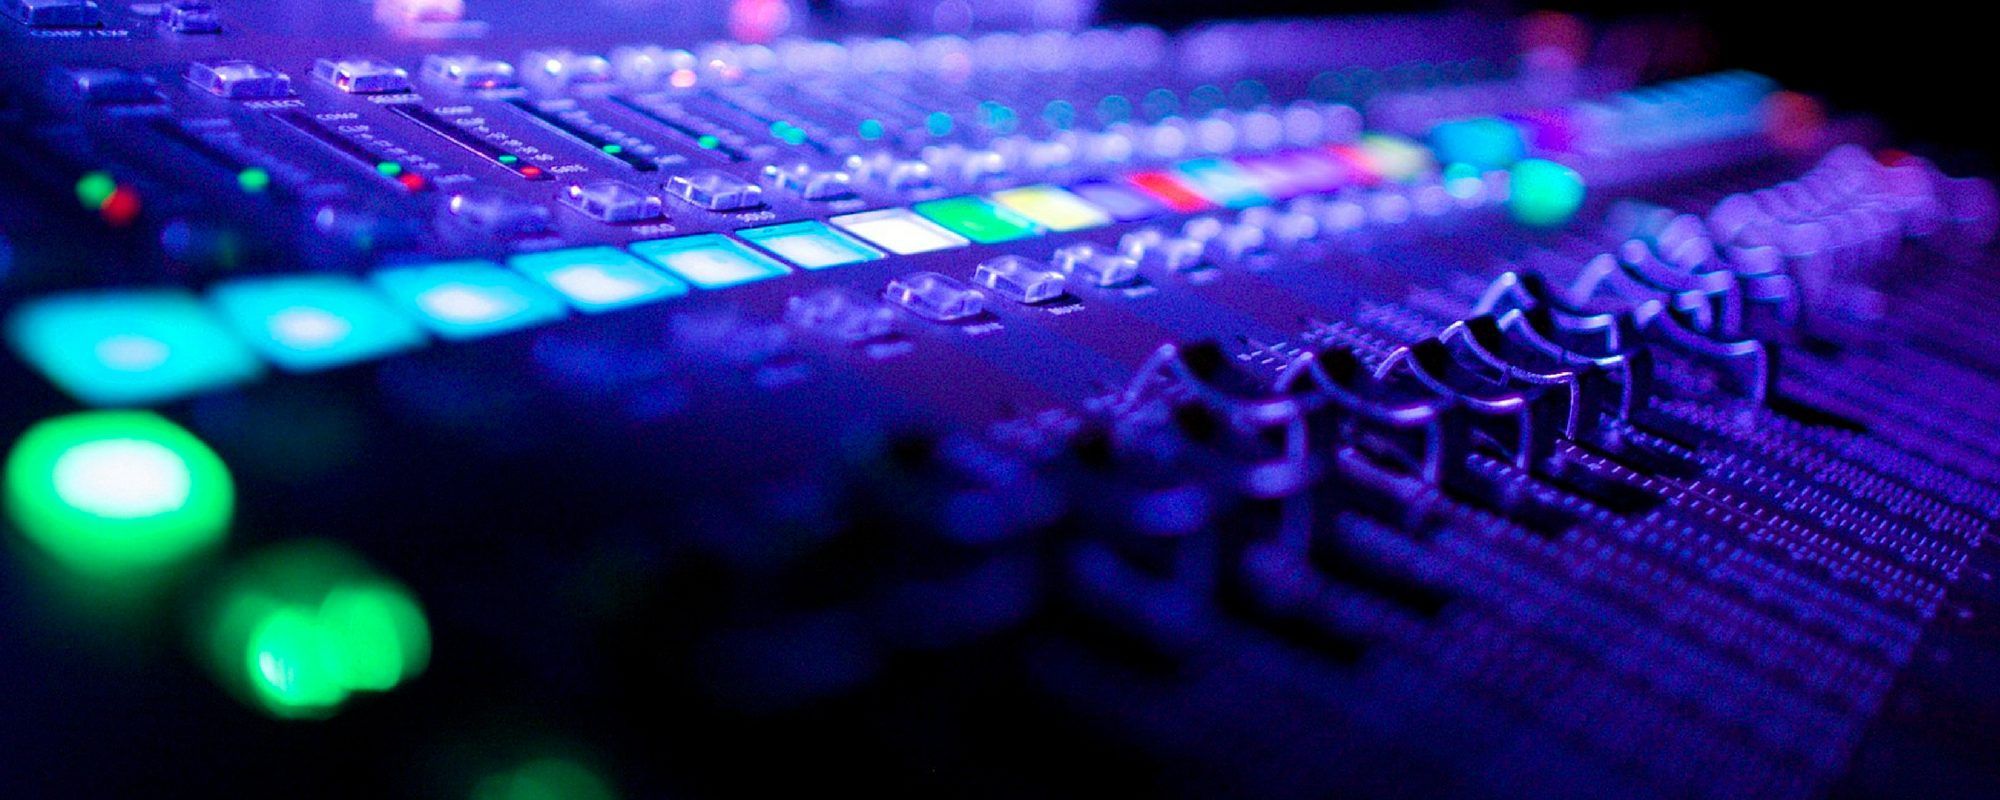 Hire An AV Company for Your Next Event in 5 Simple Steps